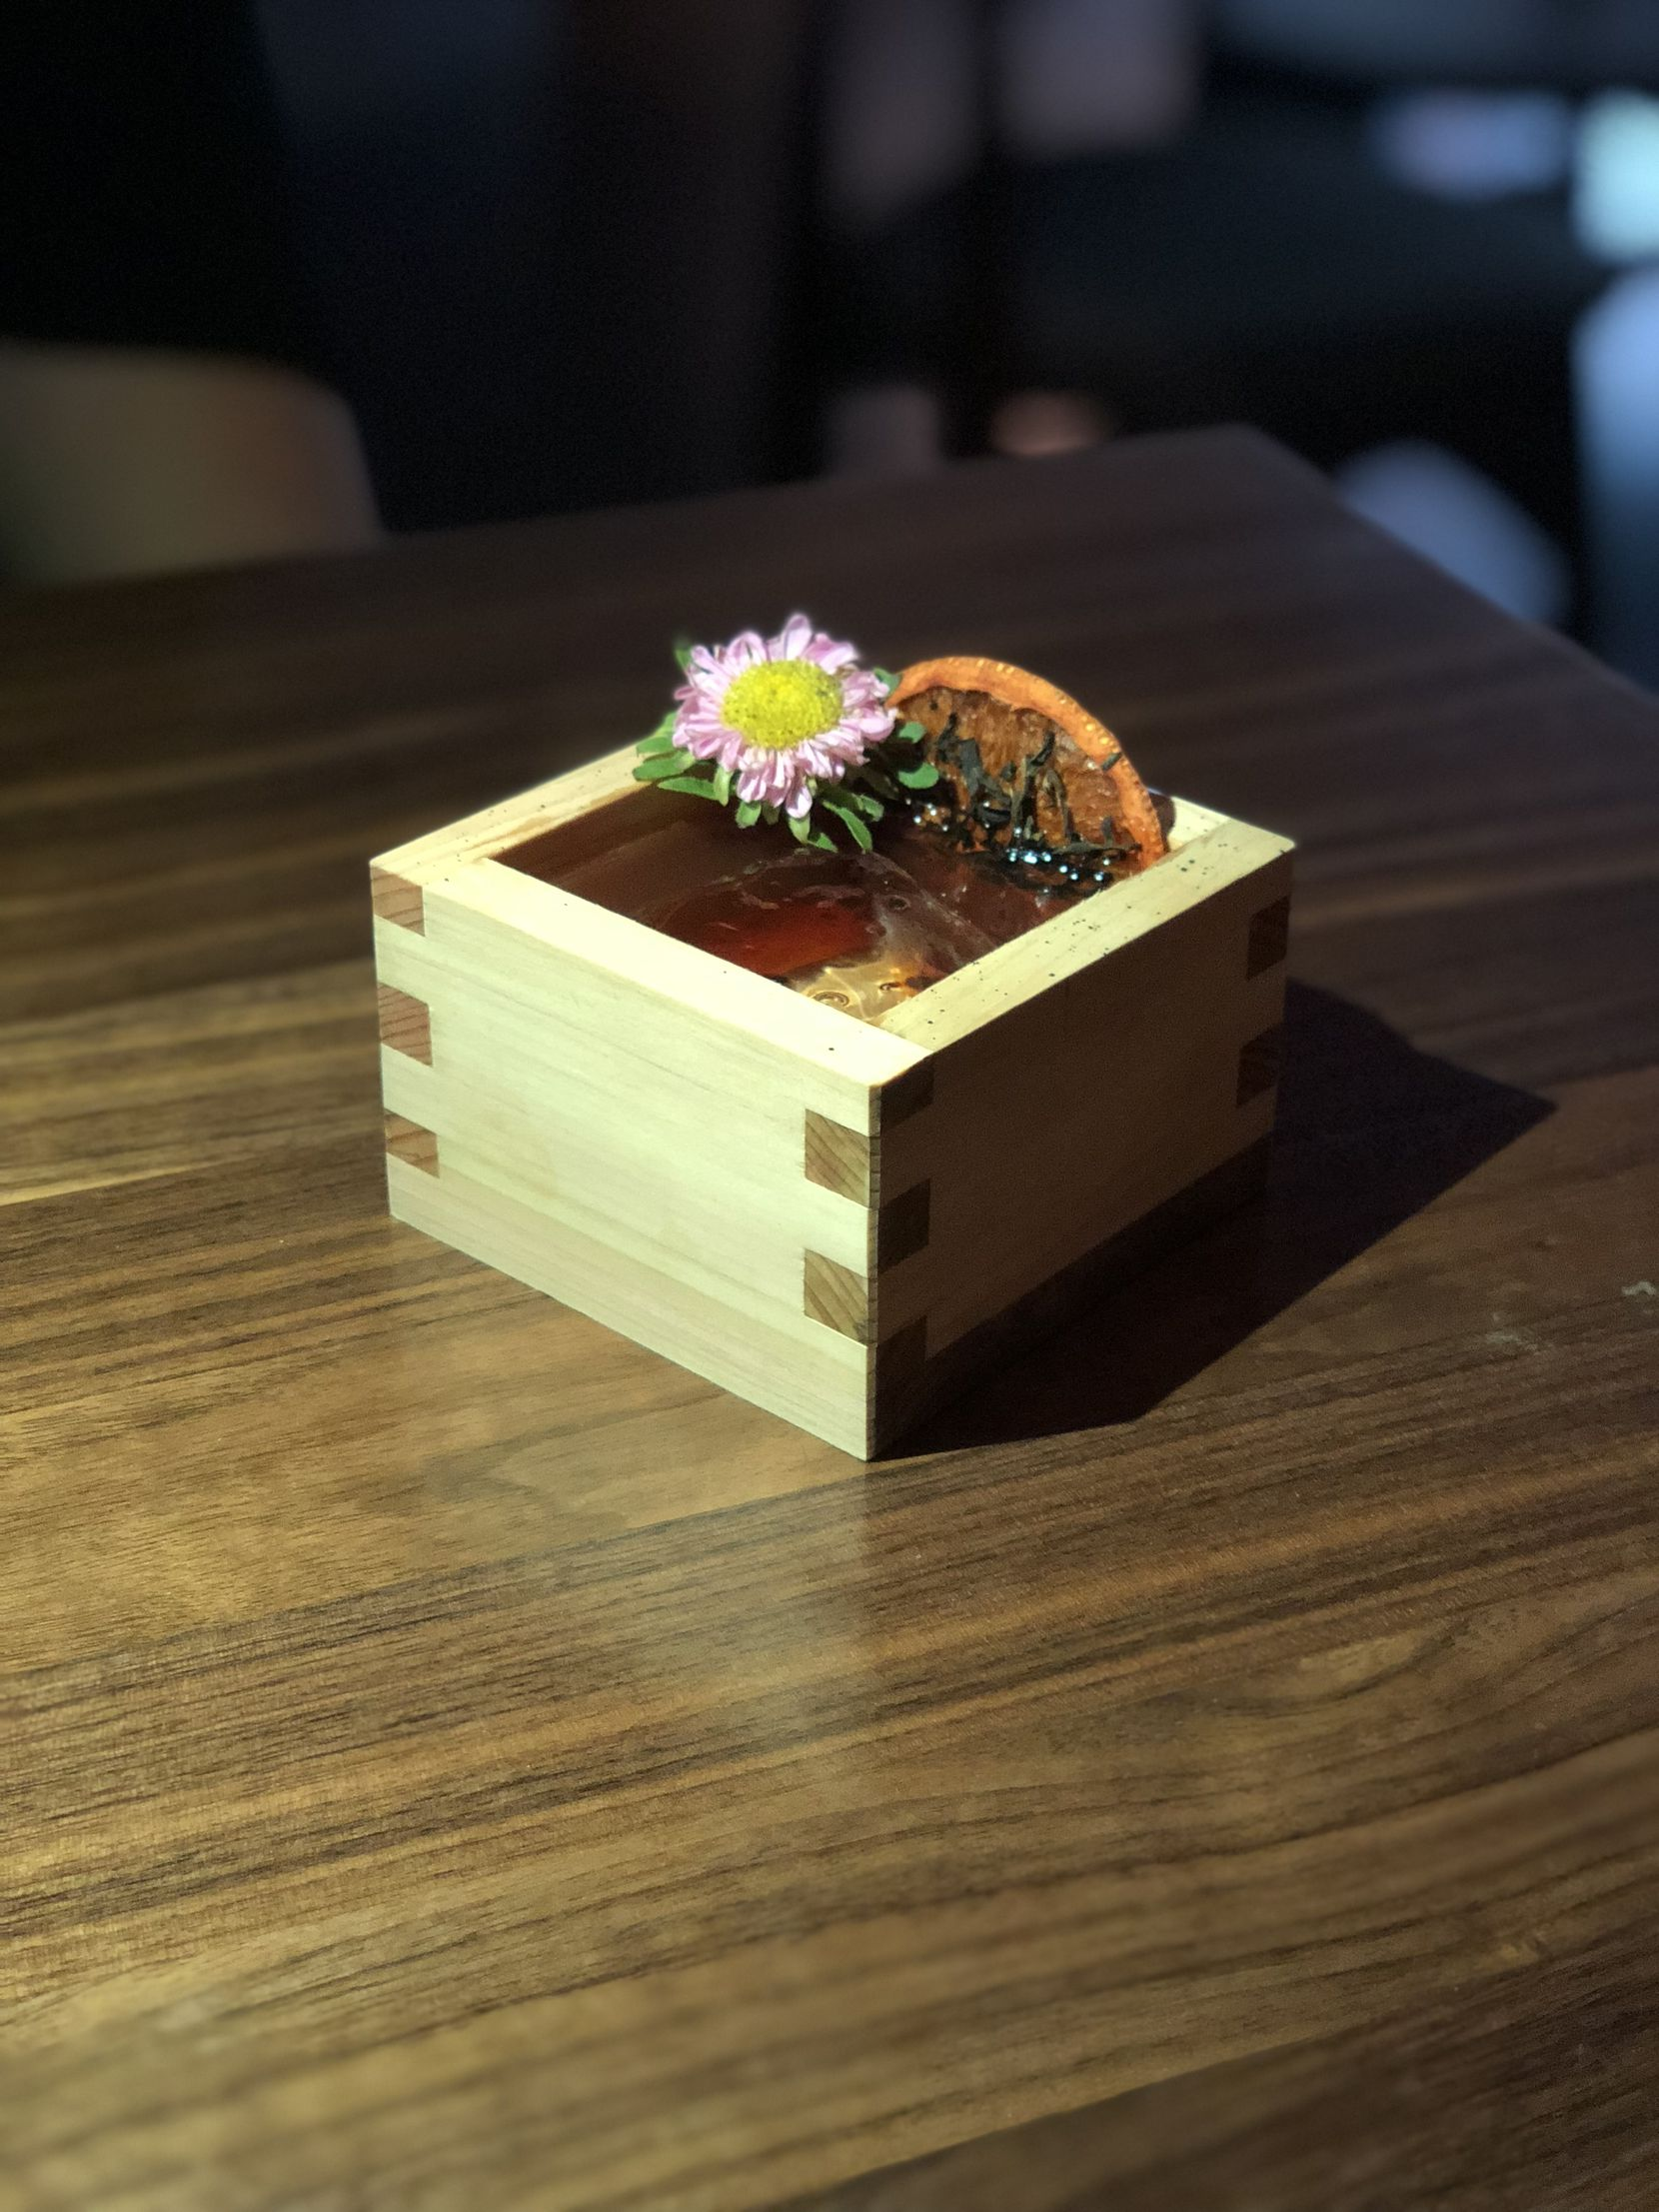 The Tigers Eye cocktail